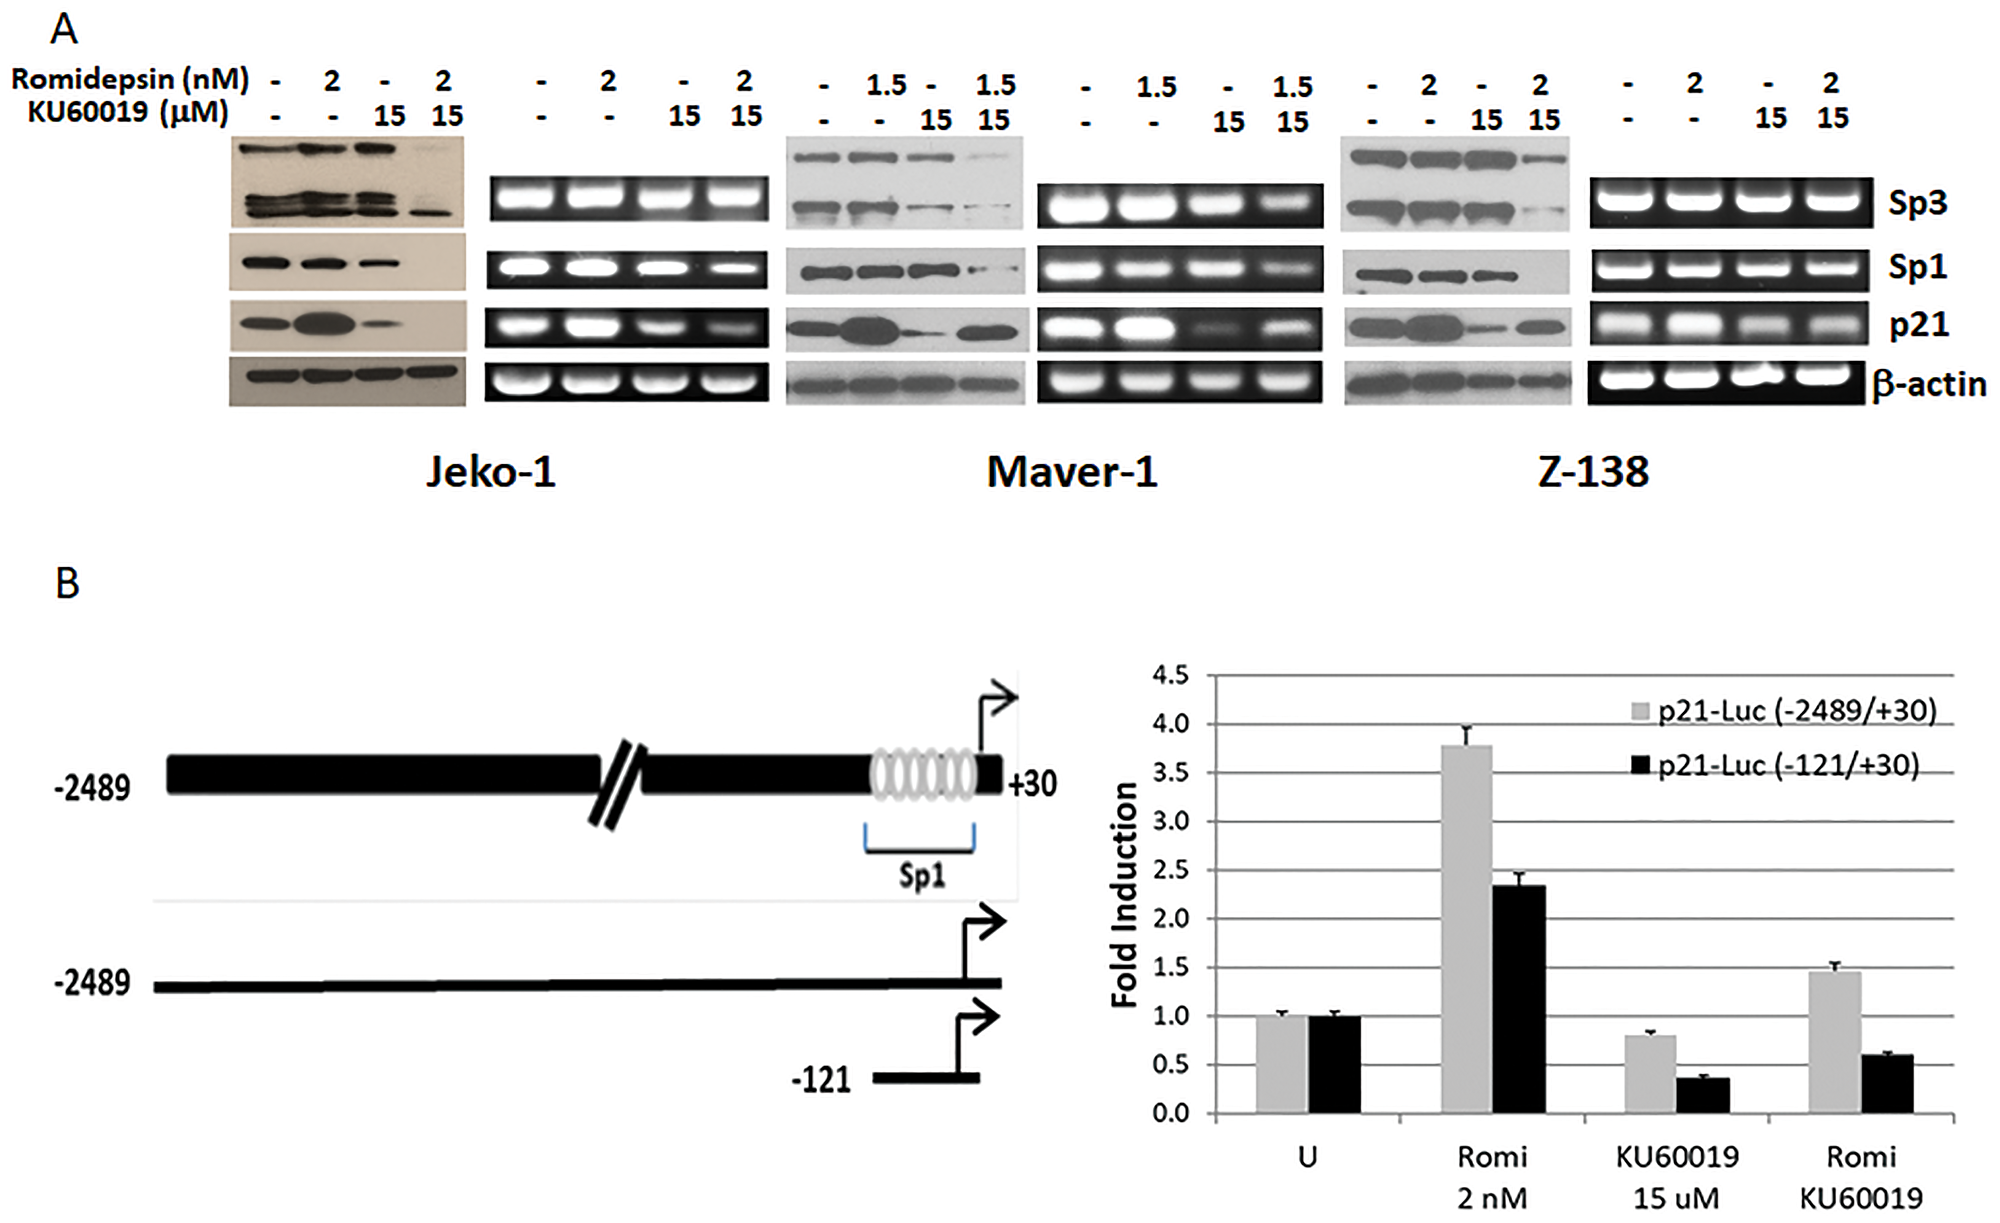 KU60019 affects the ability of romidepsin to induce expression of p21.